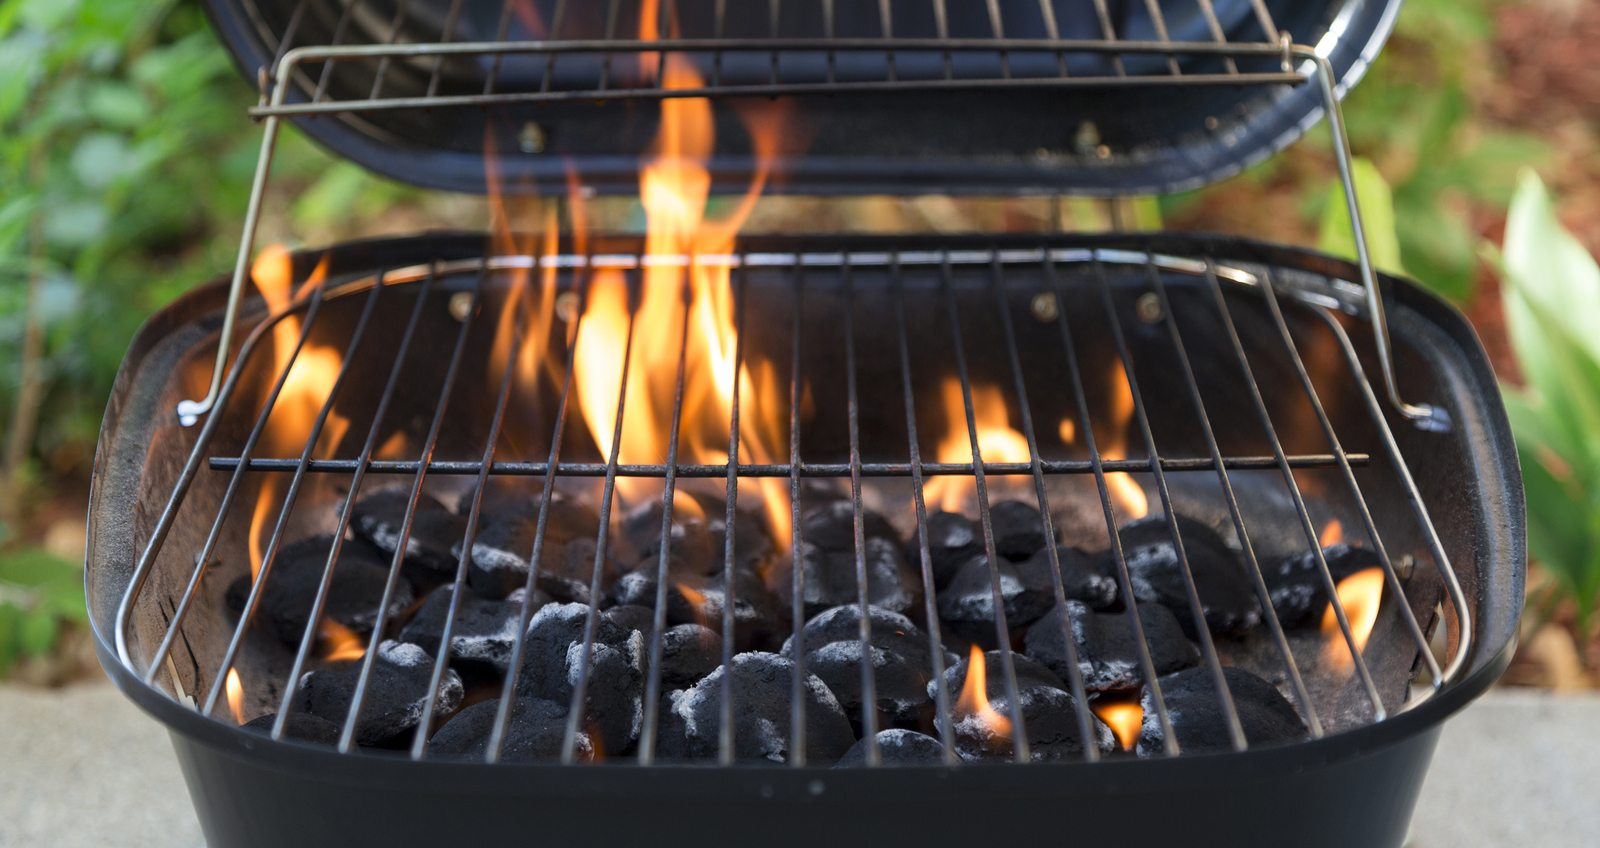 Tips For Grilling On Your Deck Deck Grilling Ideas